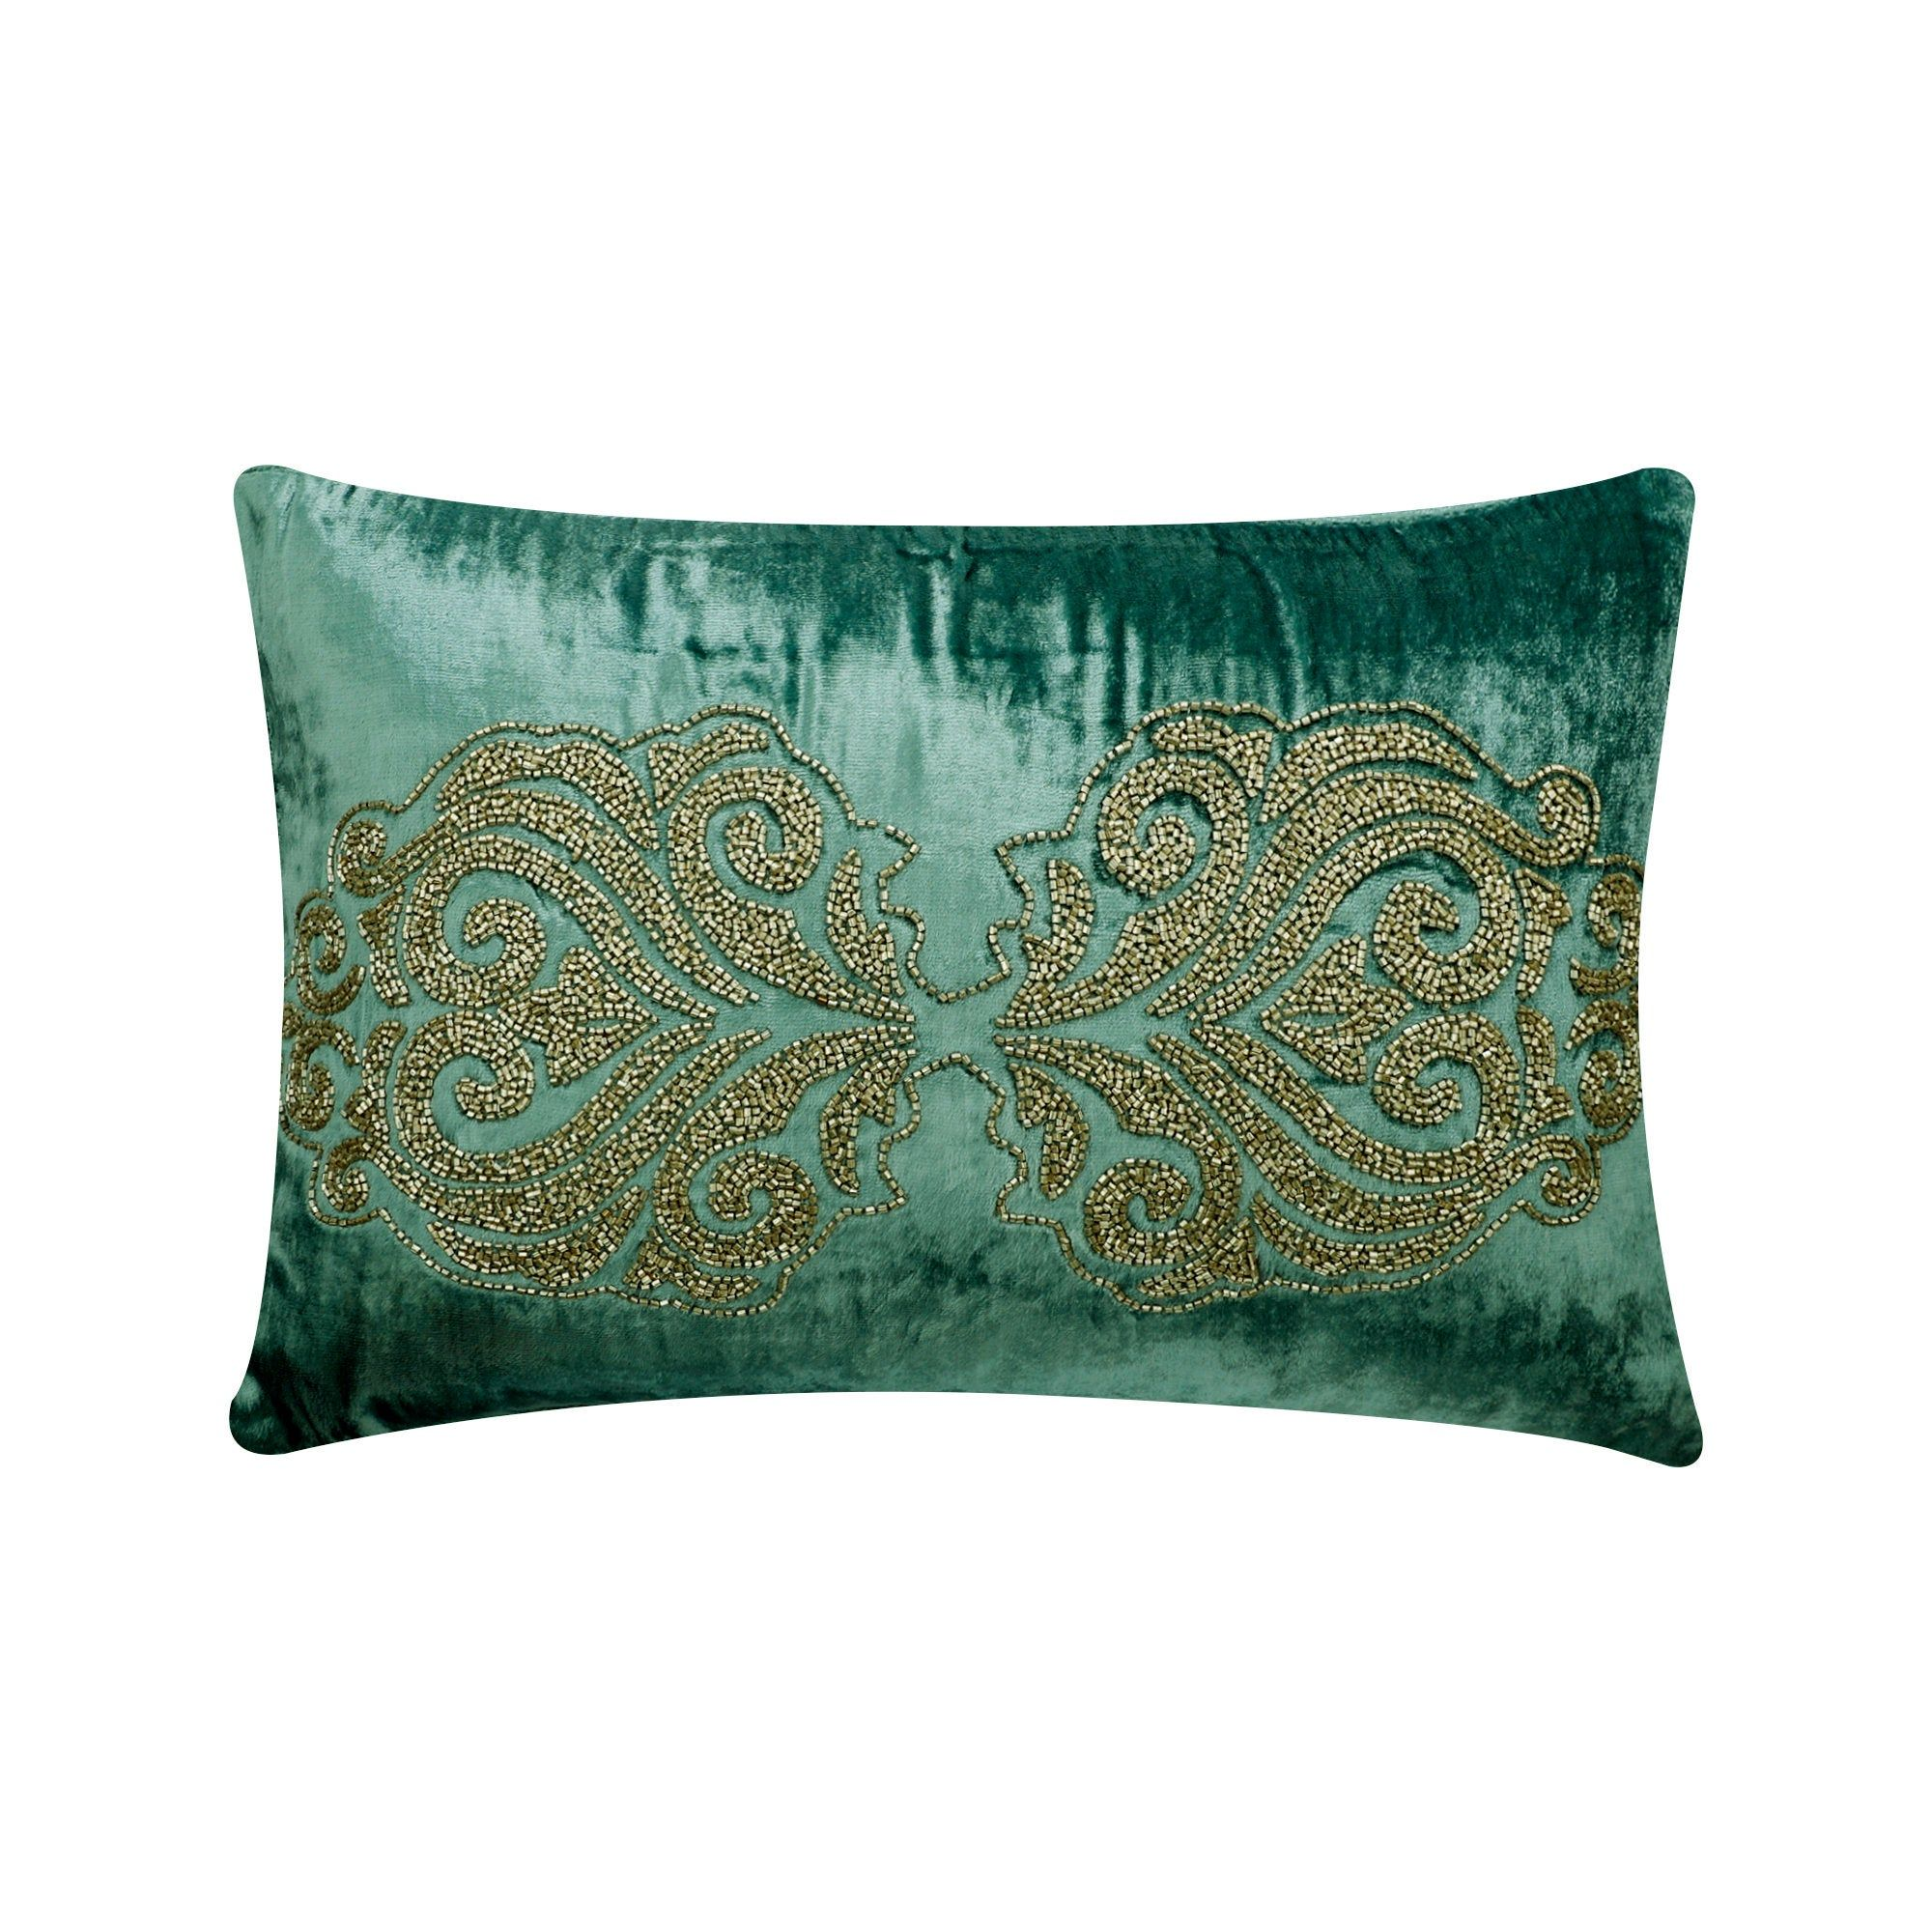 Decorative Oblong Lumbar Throw Pillow Covers Teal Velvet Etsy In 2020 Lumbar Throw Pillow Damask Pillows Velvet Pillows